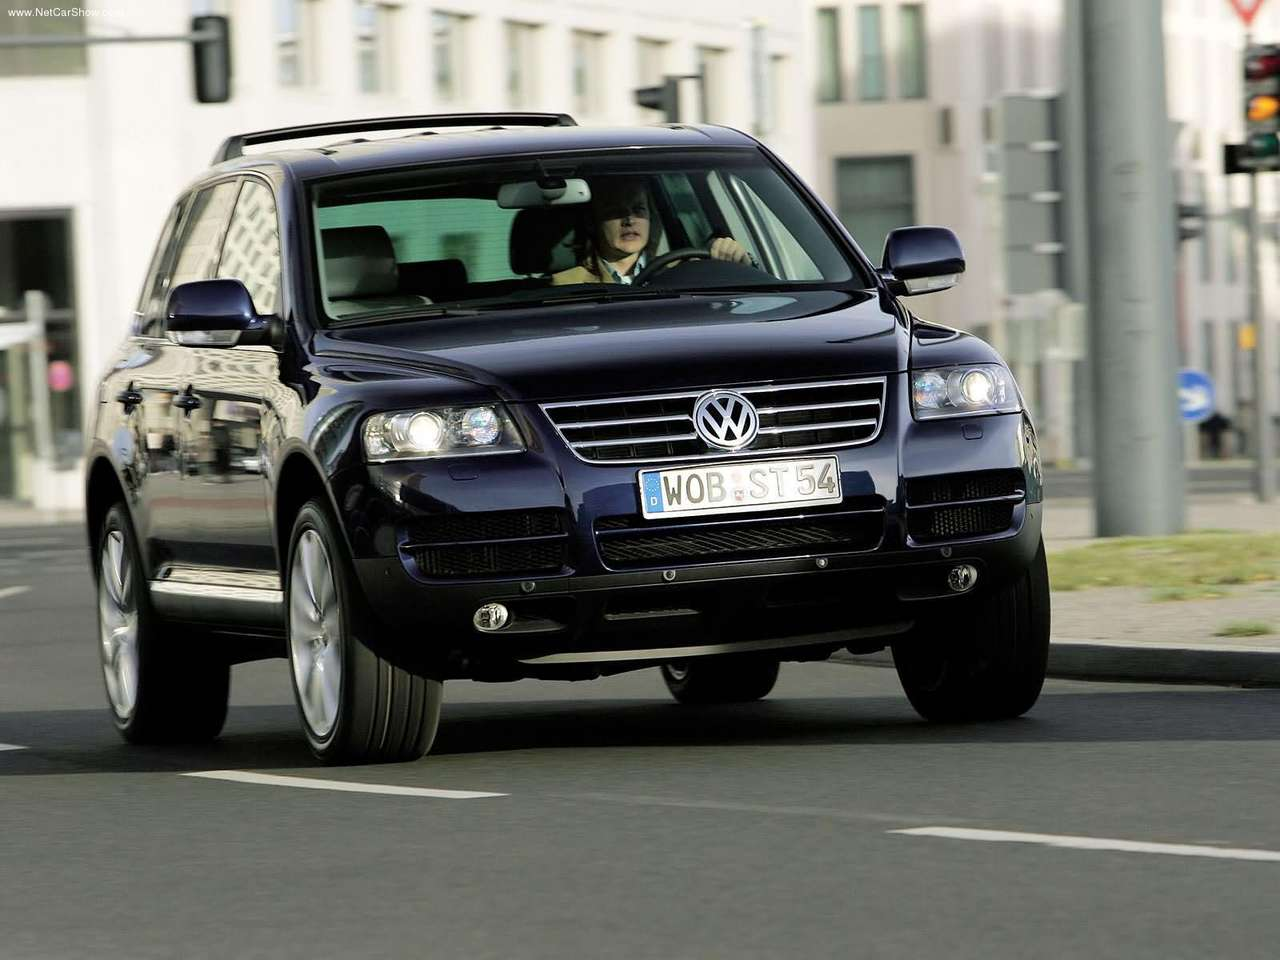 http://2.bp.blogspot.com/_lsyt_wQ2awY/TF5ZjBmd9eI/AAAAAAACCOE/igN6deHXYi0/s1600/Volkswagen-Touareg_V6_TDI_with_Exclusive_Equipment_2005_1280x960_wallpaper_05.jpg